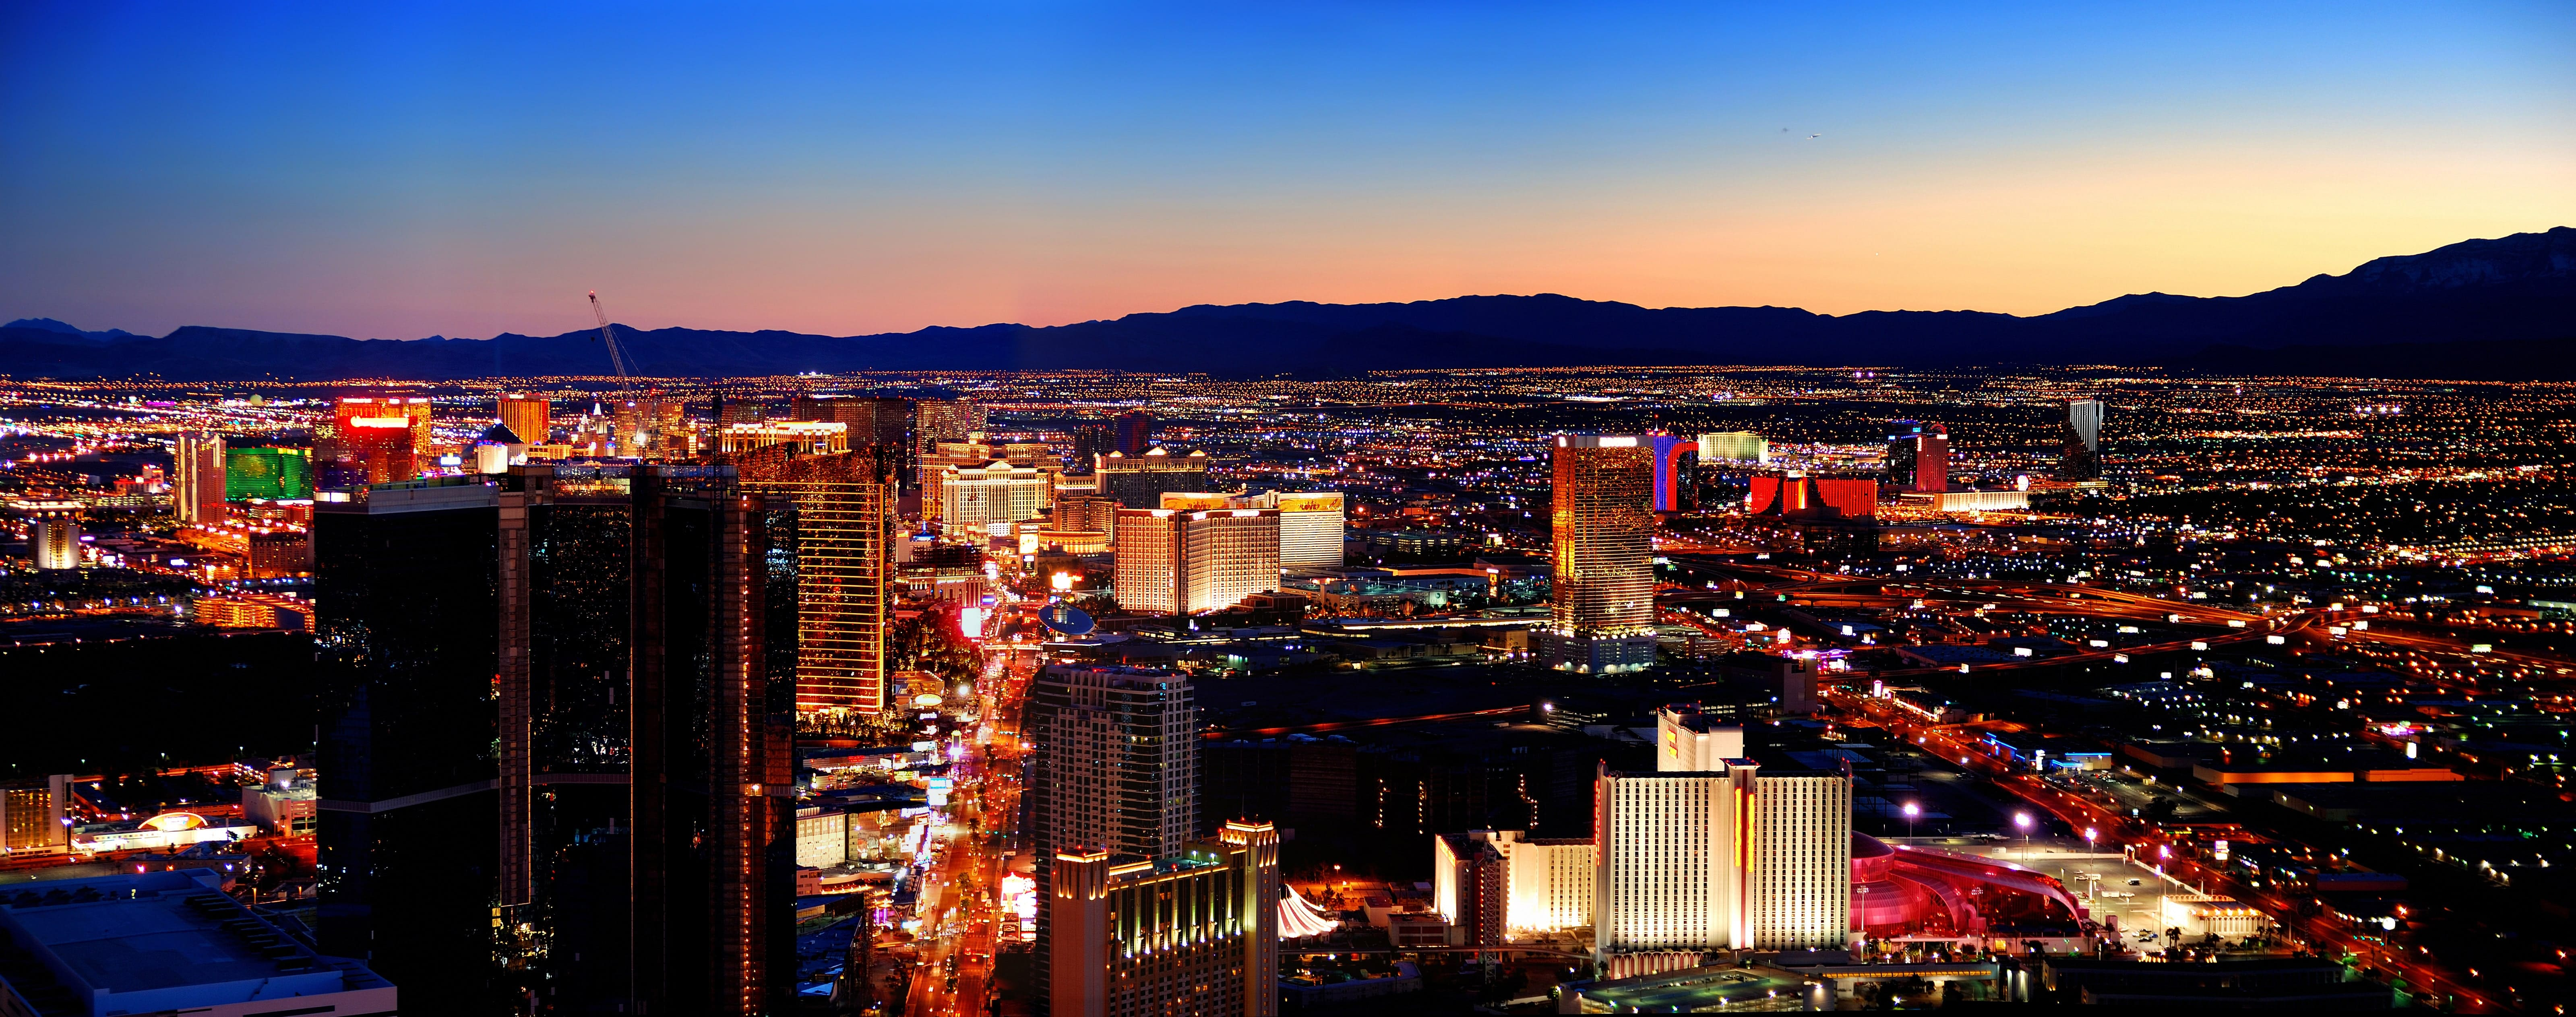 Skyline of Las Vegas, Nevada